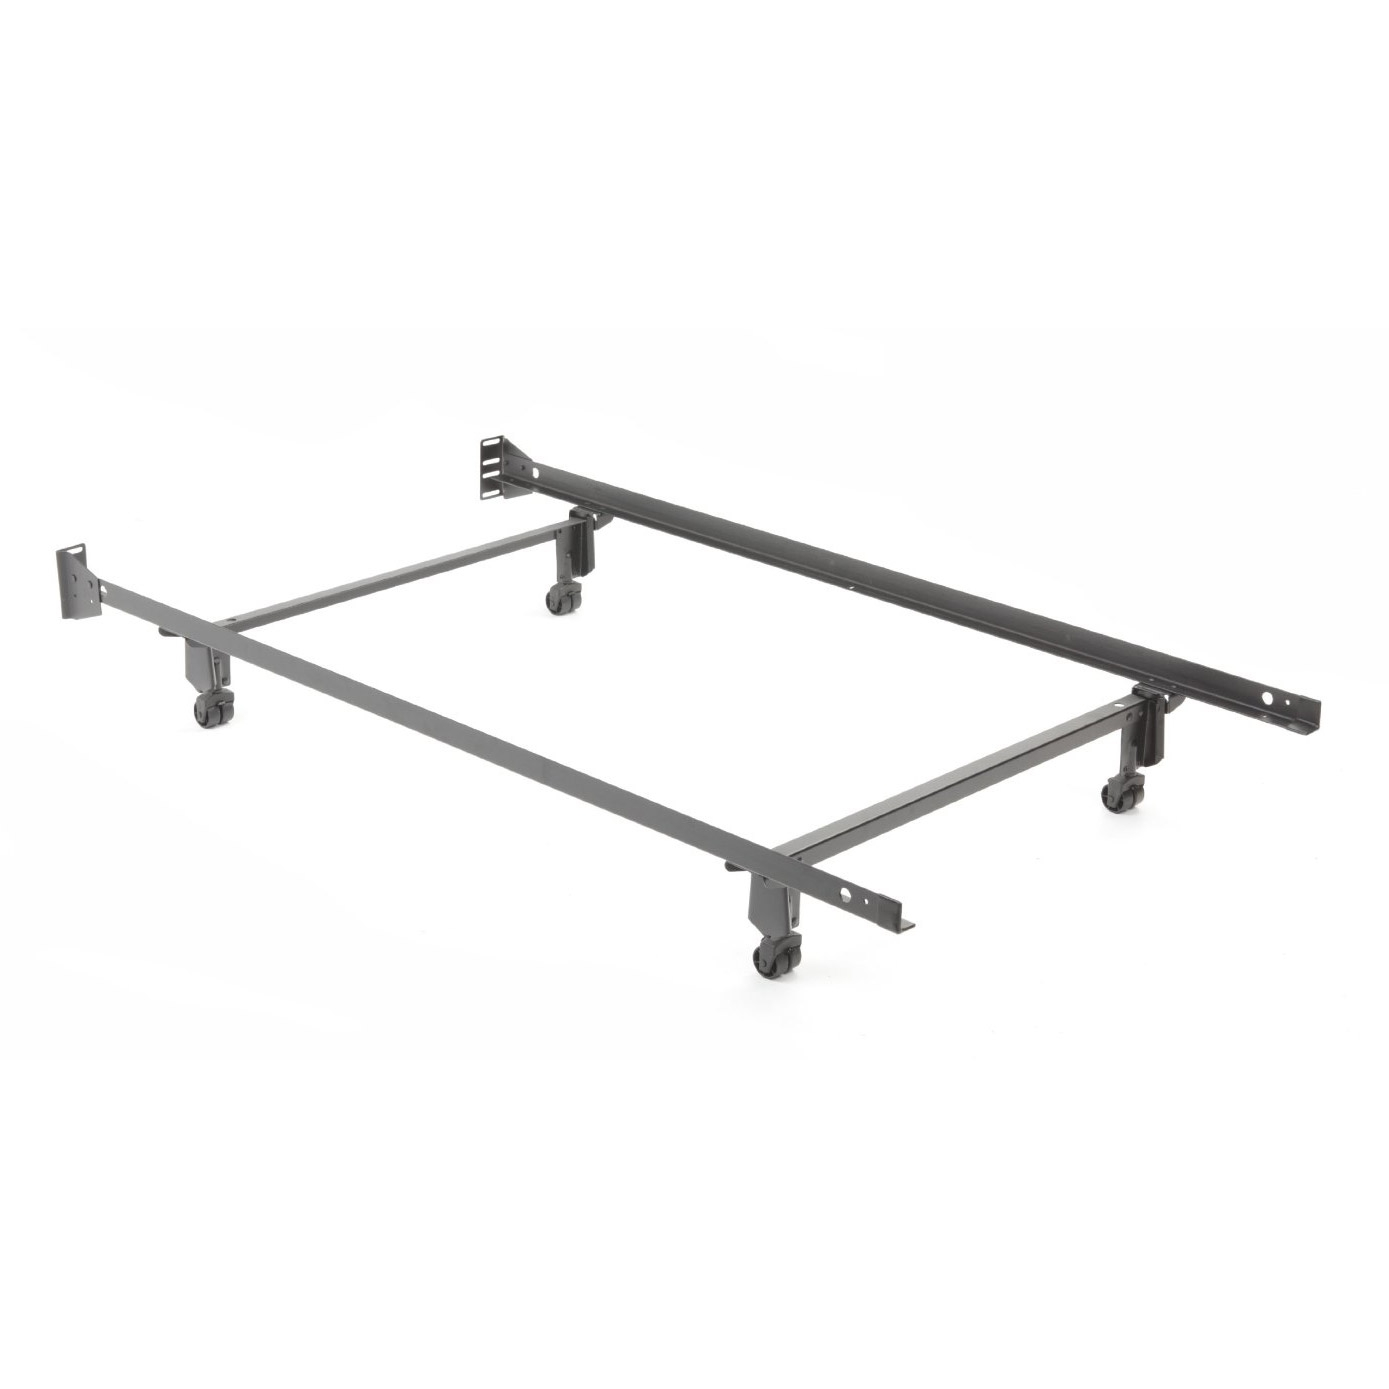 Twin size Metal Bed Frame with Casters and Headboard Brackets, LAPIBF5790 :  Our Heavy duty twin size metal bed frames are the some of the strongest bed frames made today. Original Wedge-Lock leg construction provides the ultimate in strength and durability. Side rails simply wedge onto cross rails. Steel sockets are pre-built into legs. The last bed frame you'll ever need to buy.